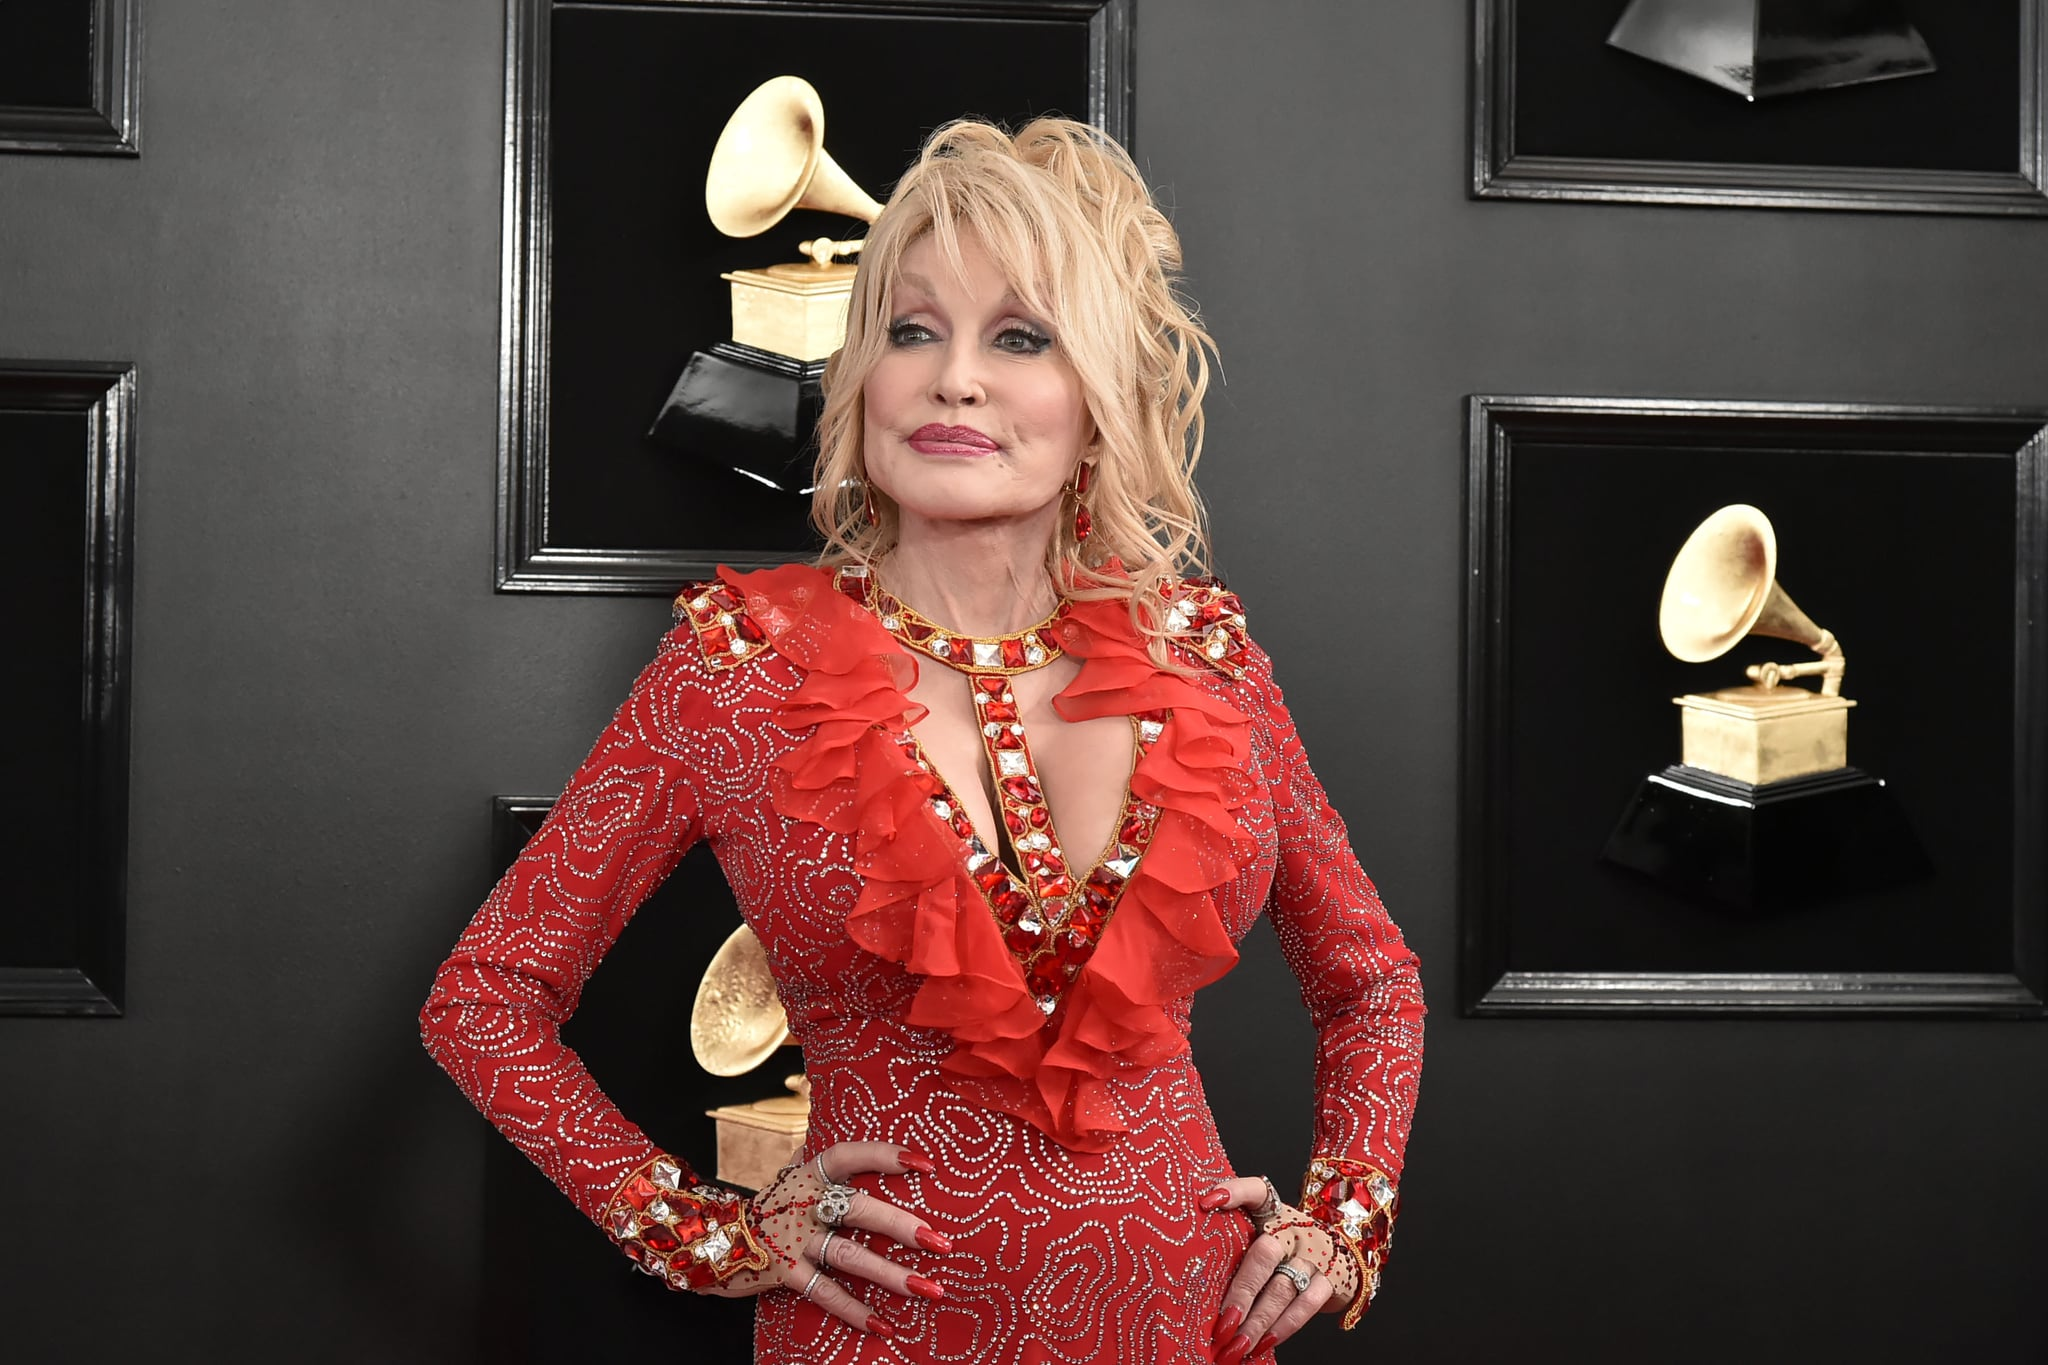 LOS ANGELES, CALIFORNIA - FEBRUARY 10: Dolly Parton attends the 61st Annual Grammy Awards at Staples Centre on February 10, 2019 in Los Angeles, California. (Photo by David Crotty/Patrick McMullan via Getty Images)